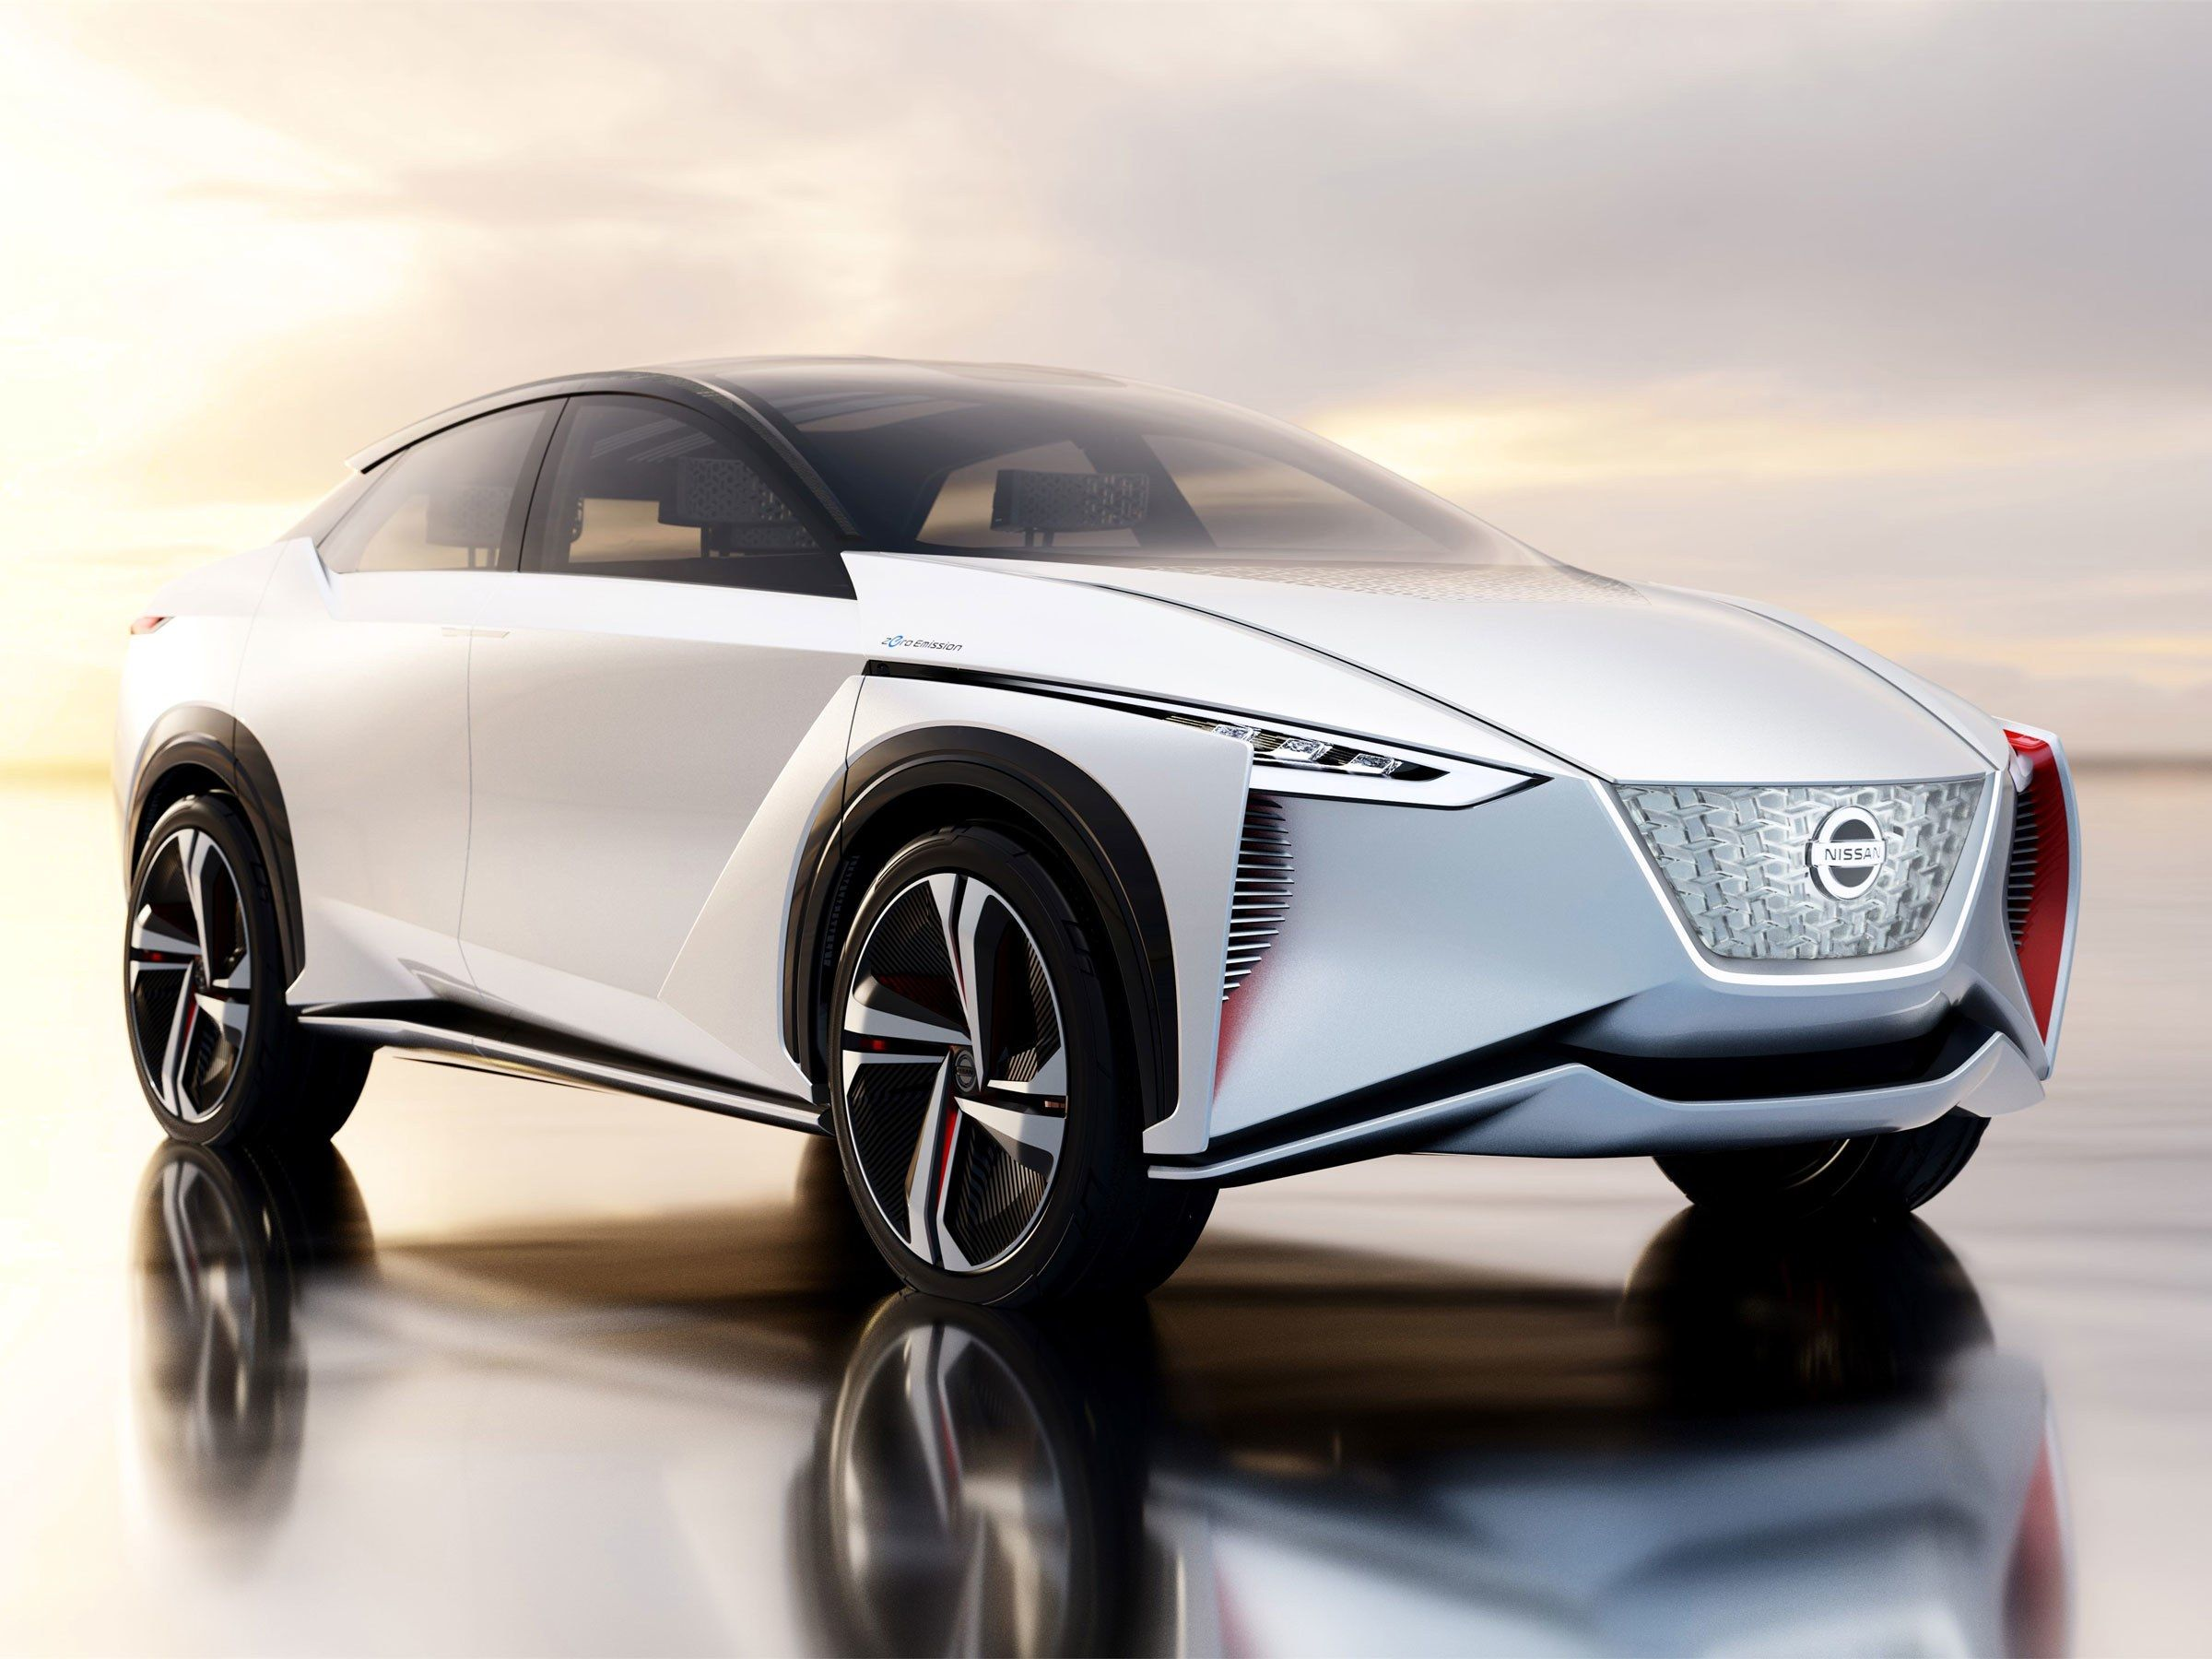 Nissan's New Electric Car Concept Comes With Canto, a